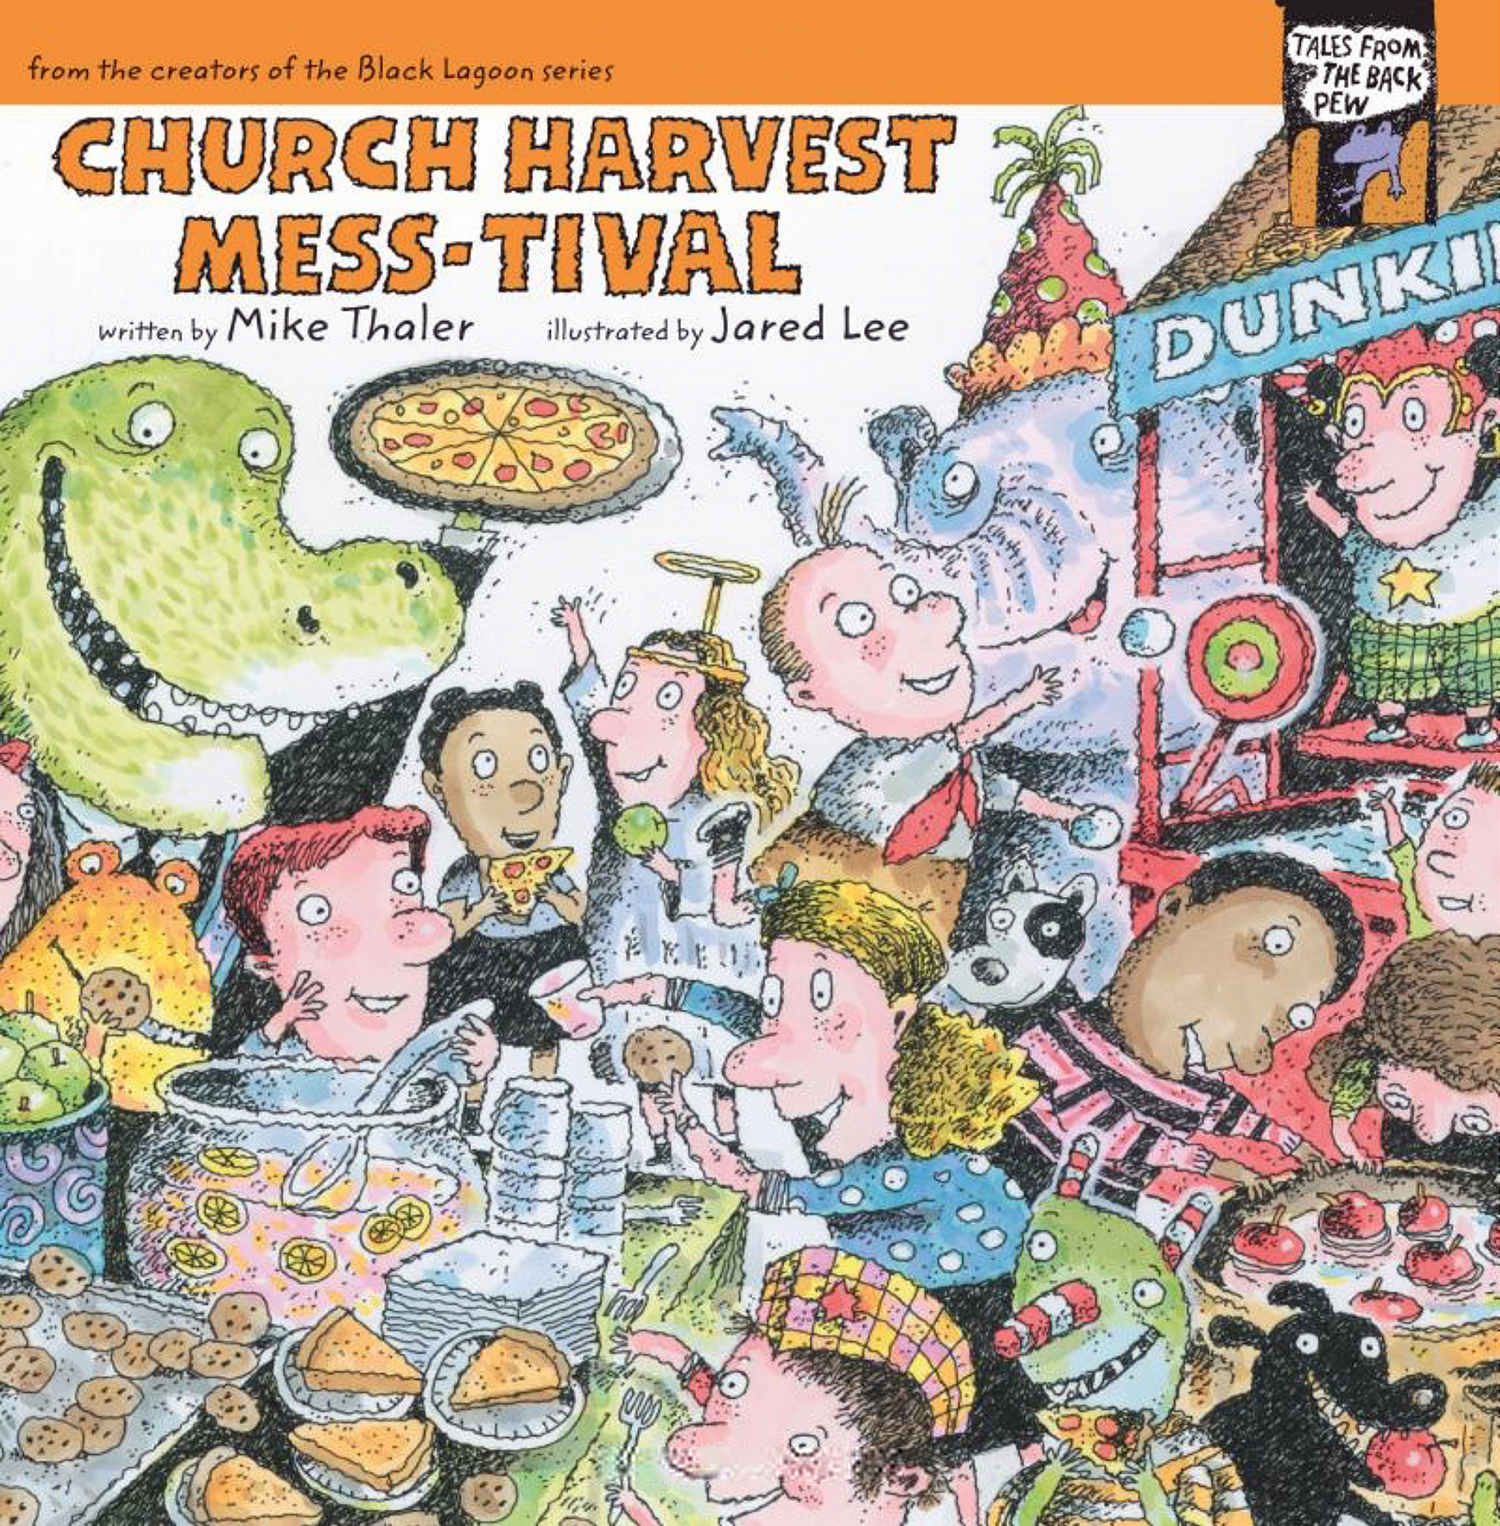 BackPew05-Church Harvest Mess-tival